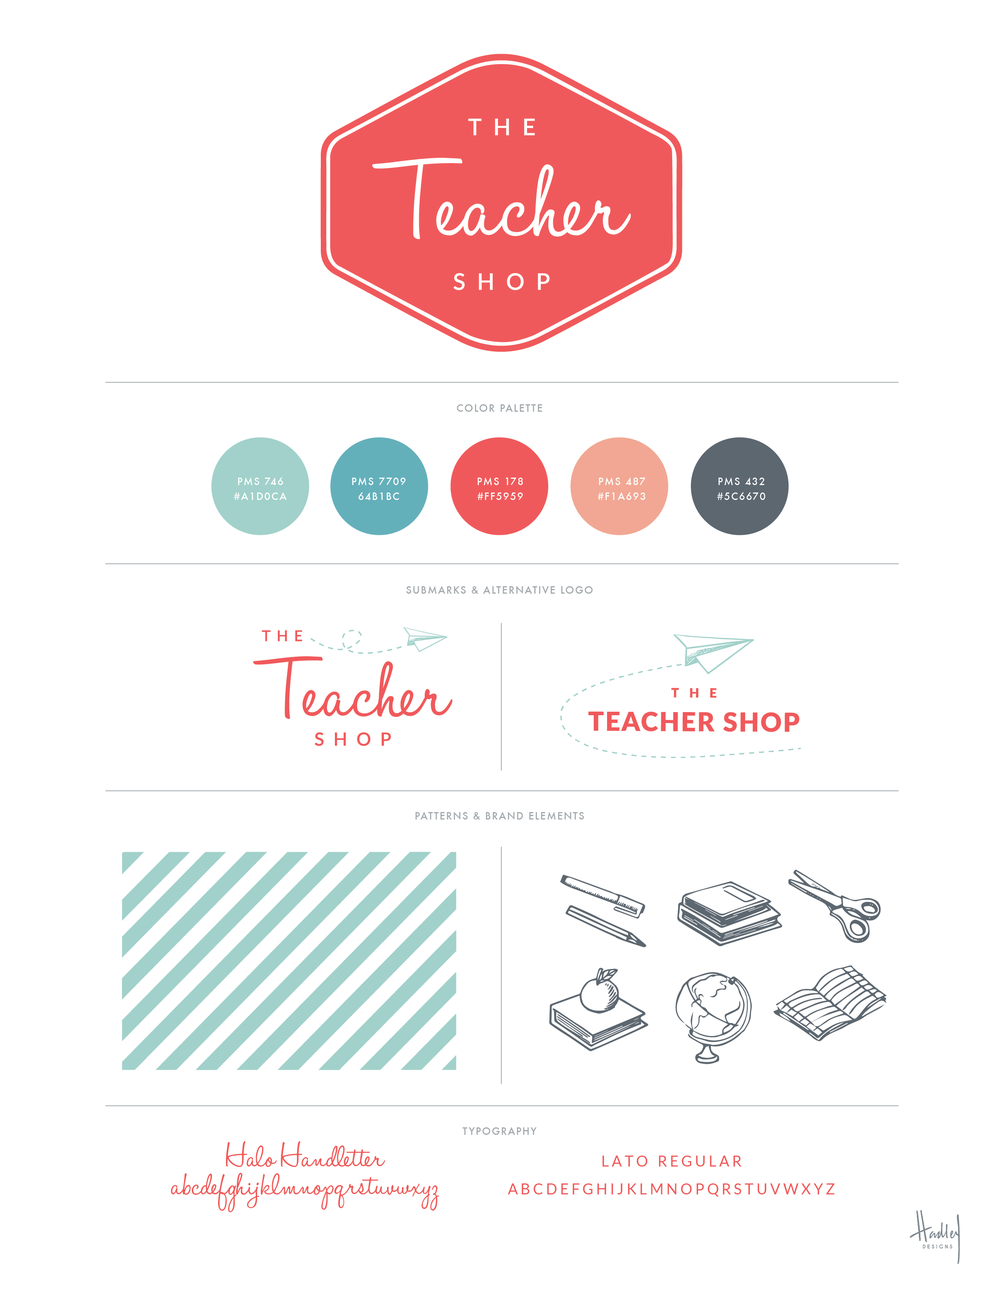 We're excited to launch the new branding for @shoptheteachershop! Follow along and visit the new site (shoptheteachershop.com) to order your classroom supplies, toys, games and more!